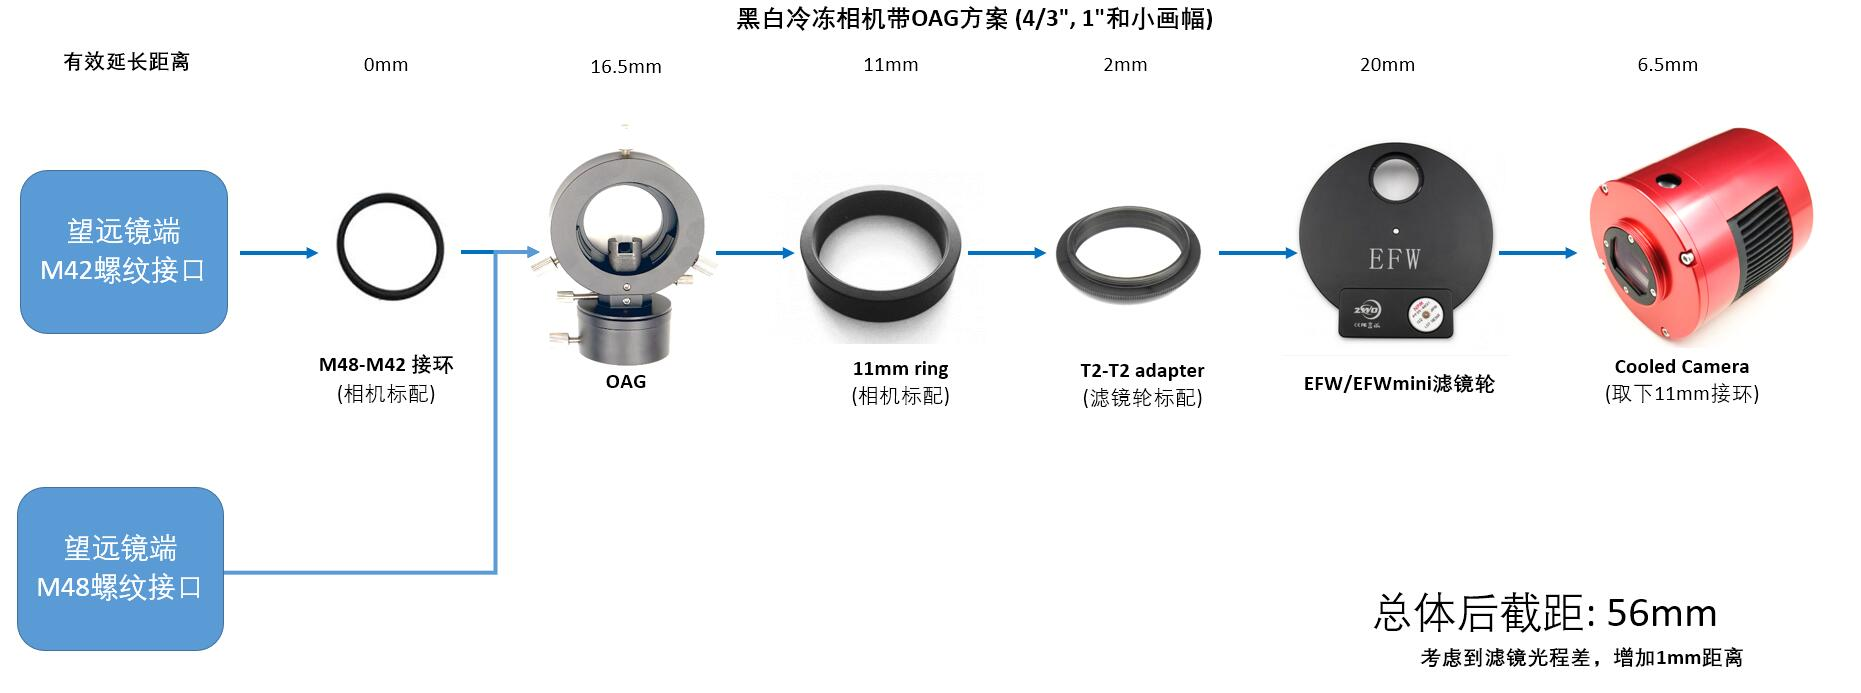 Cooled Mono Camera with OAG solution(中文)